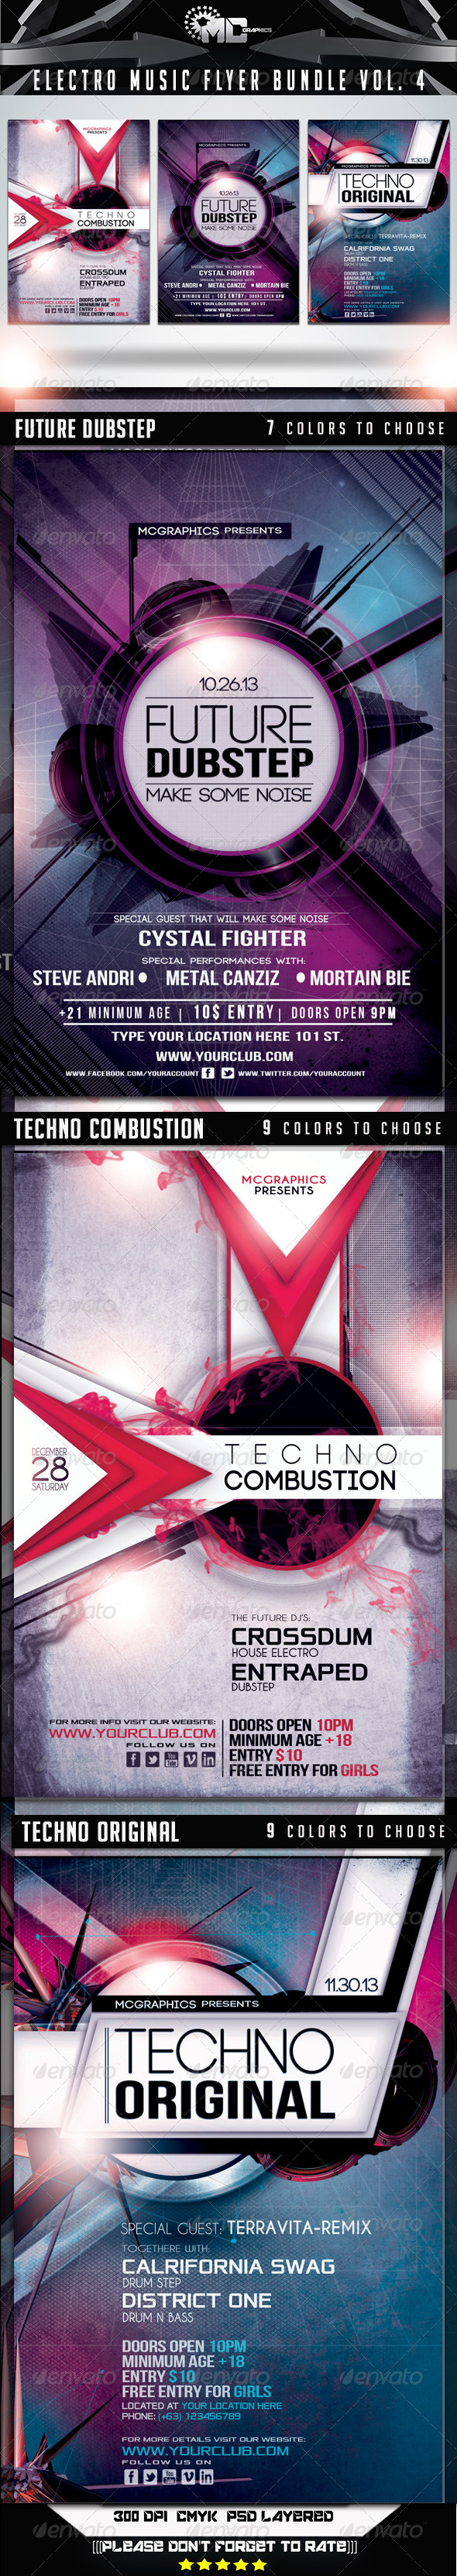 Electro Music Flyer Bundle Vol. 5 - Flyers Print Templates